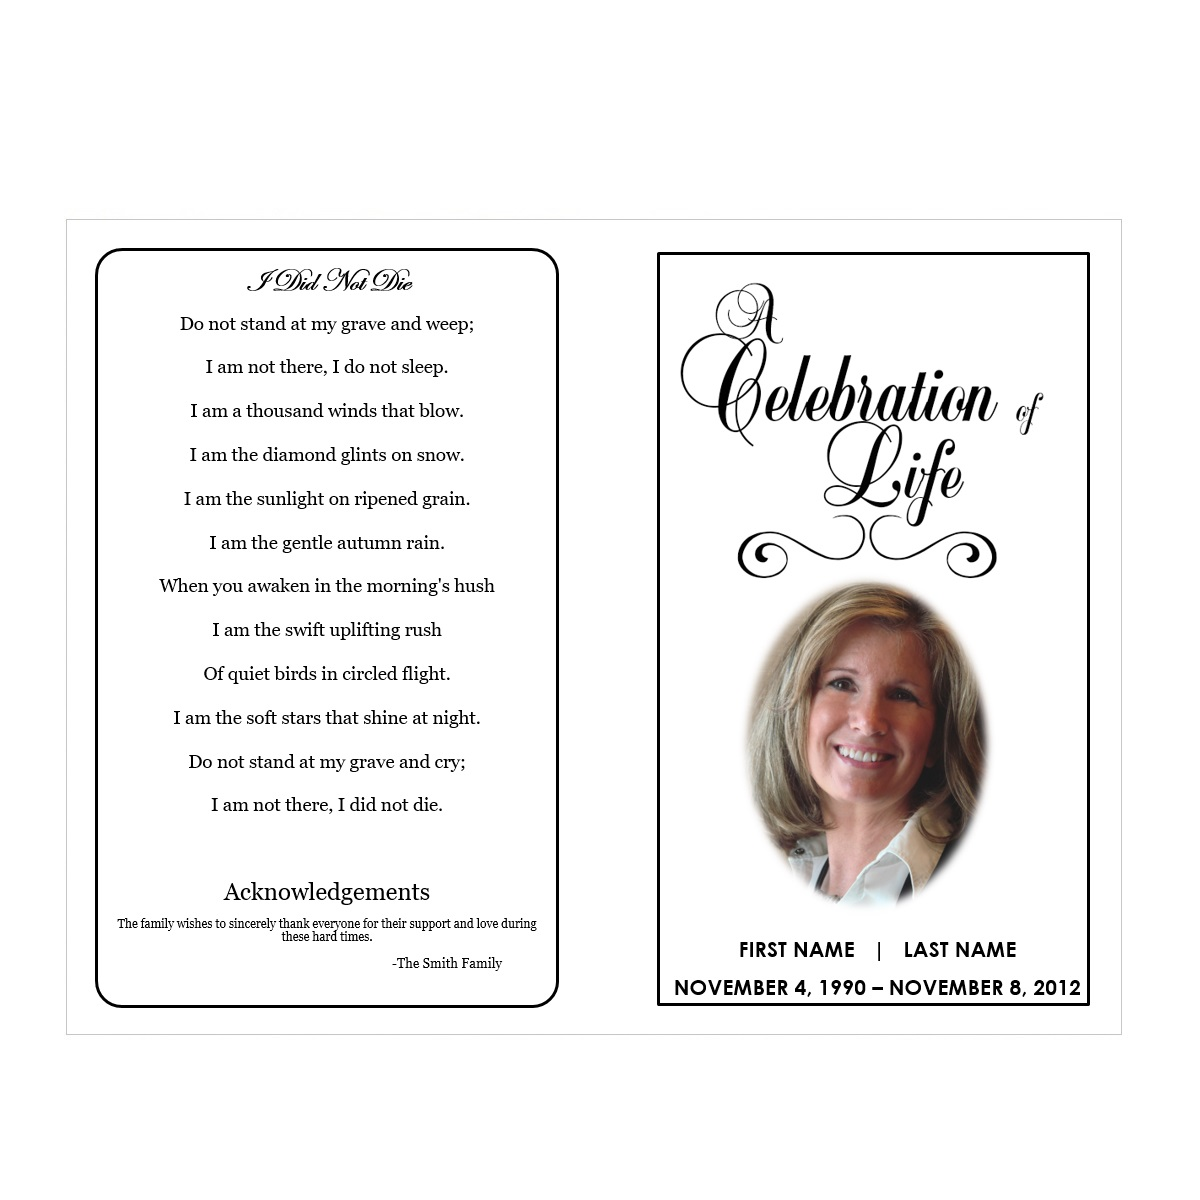 funeral pamphlet template word - Ideal.vistalist.co